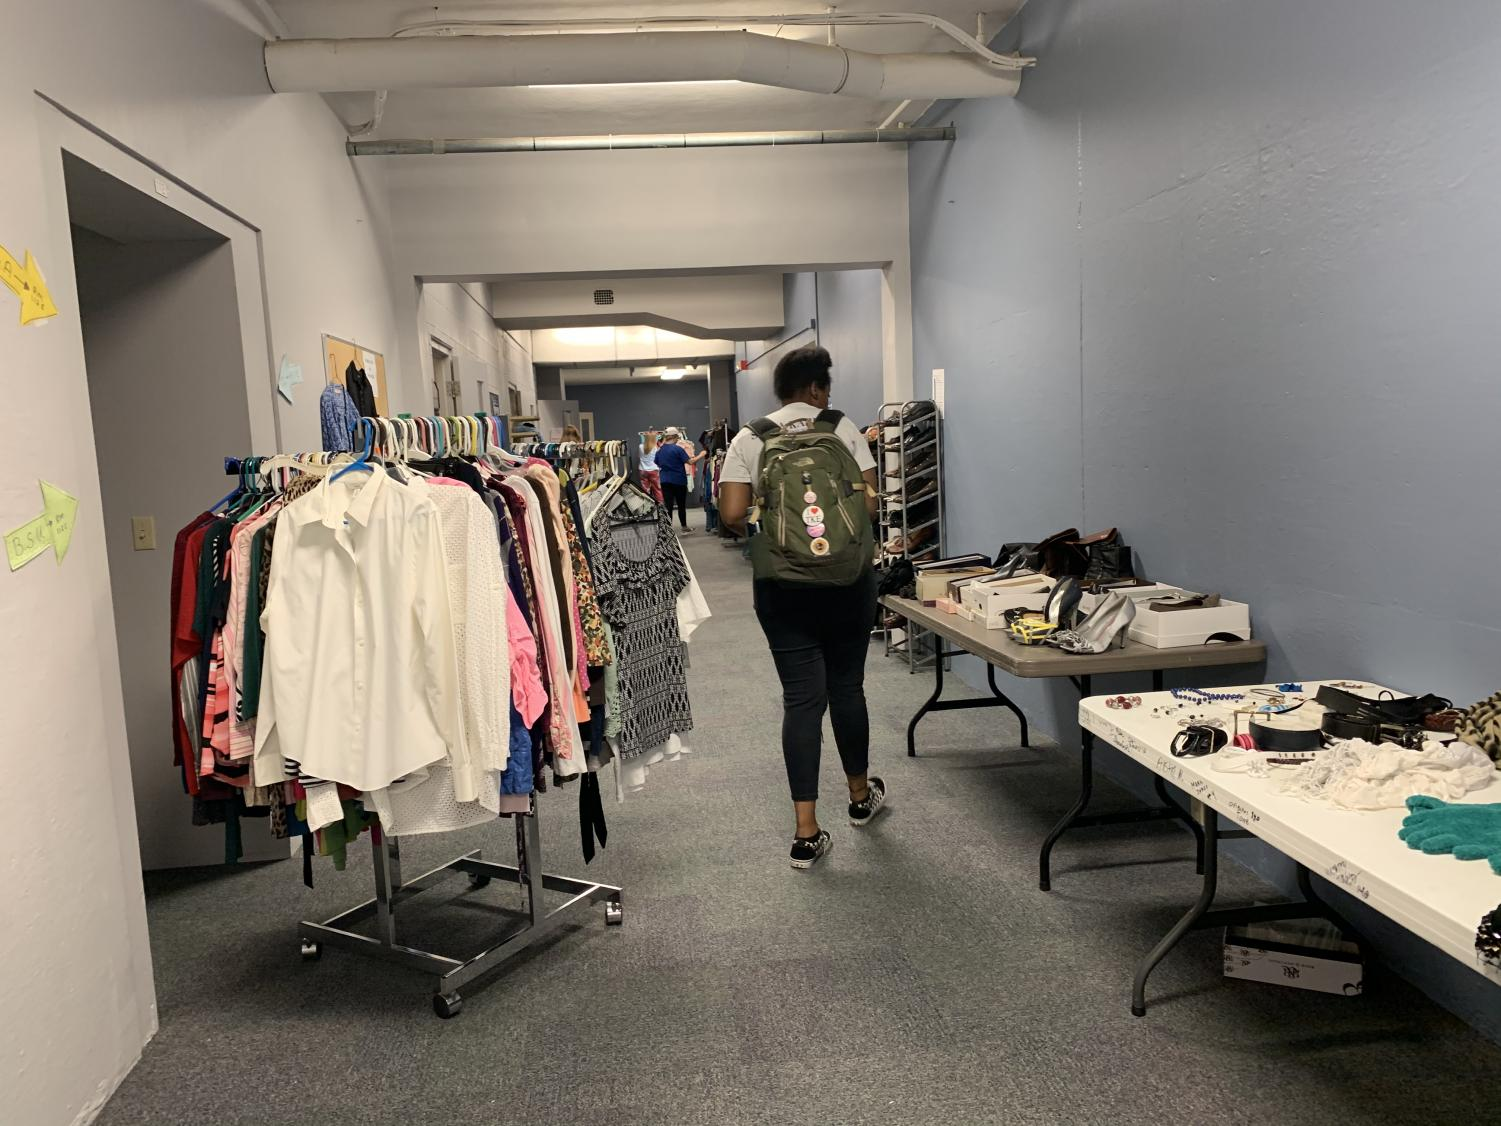 A student walking through the tables of accessories and racks of clothes.